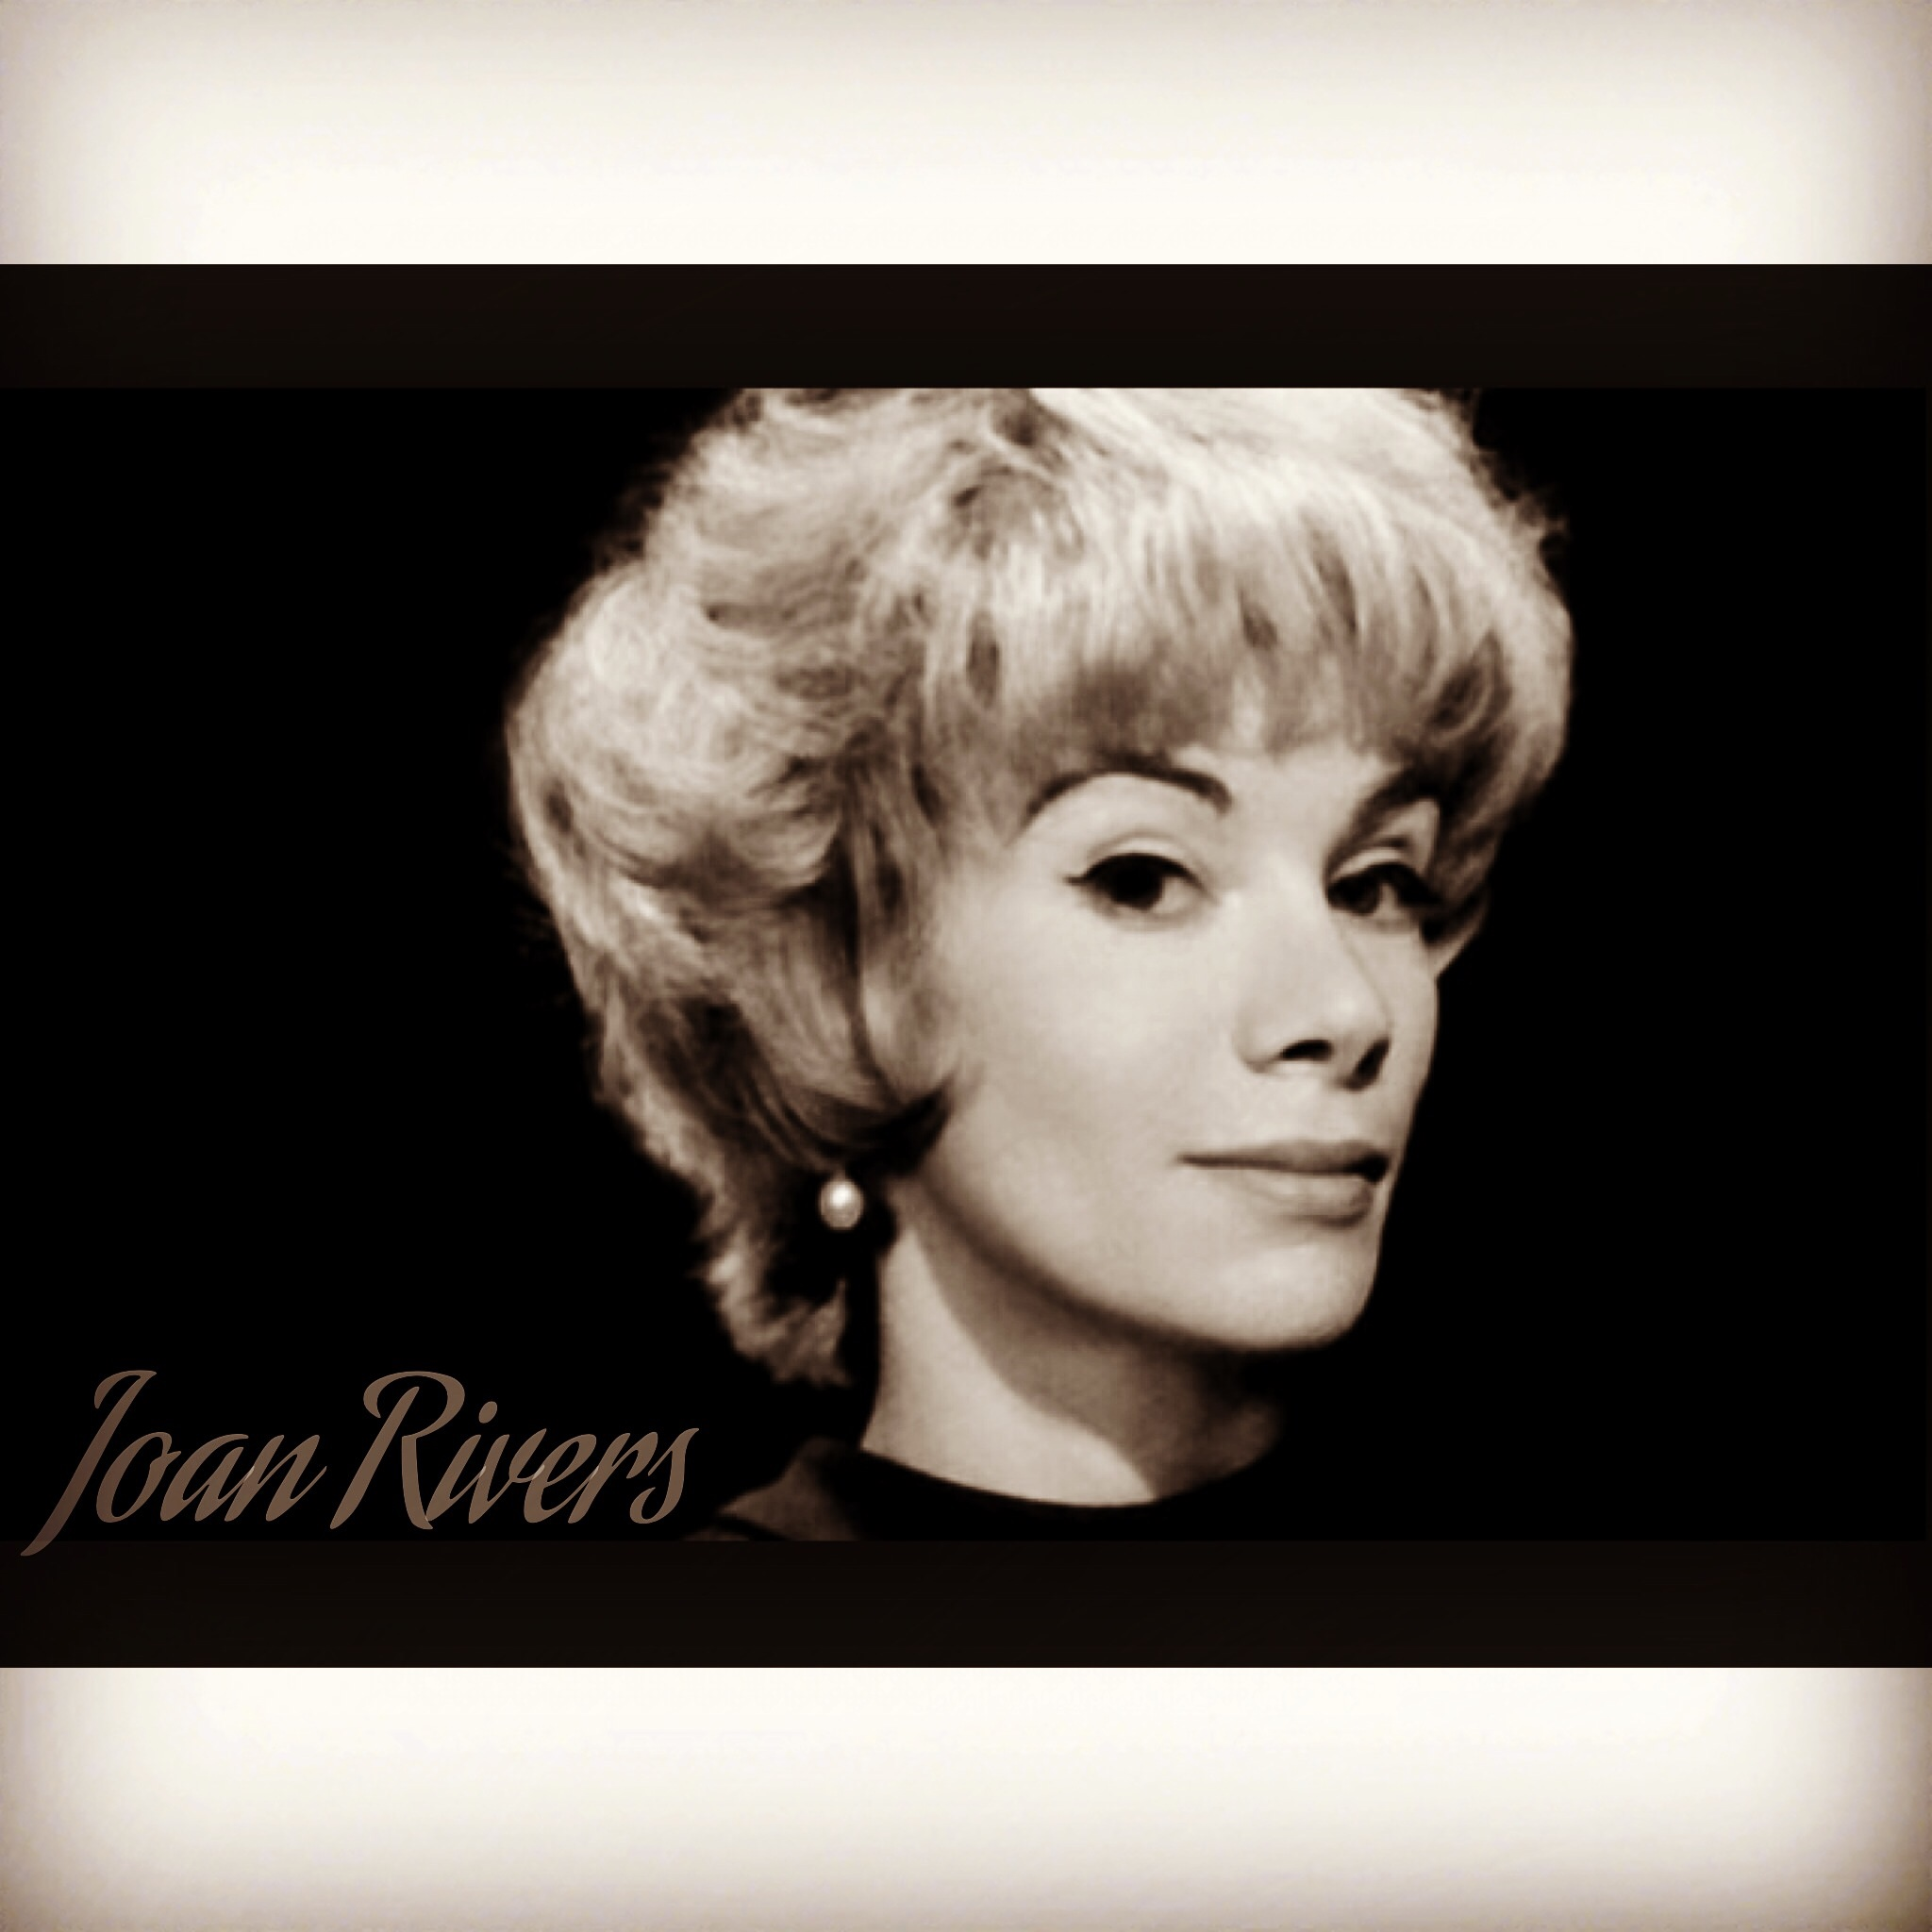 So sad....we have lost a legend. Our prayers to her family and friends...